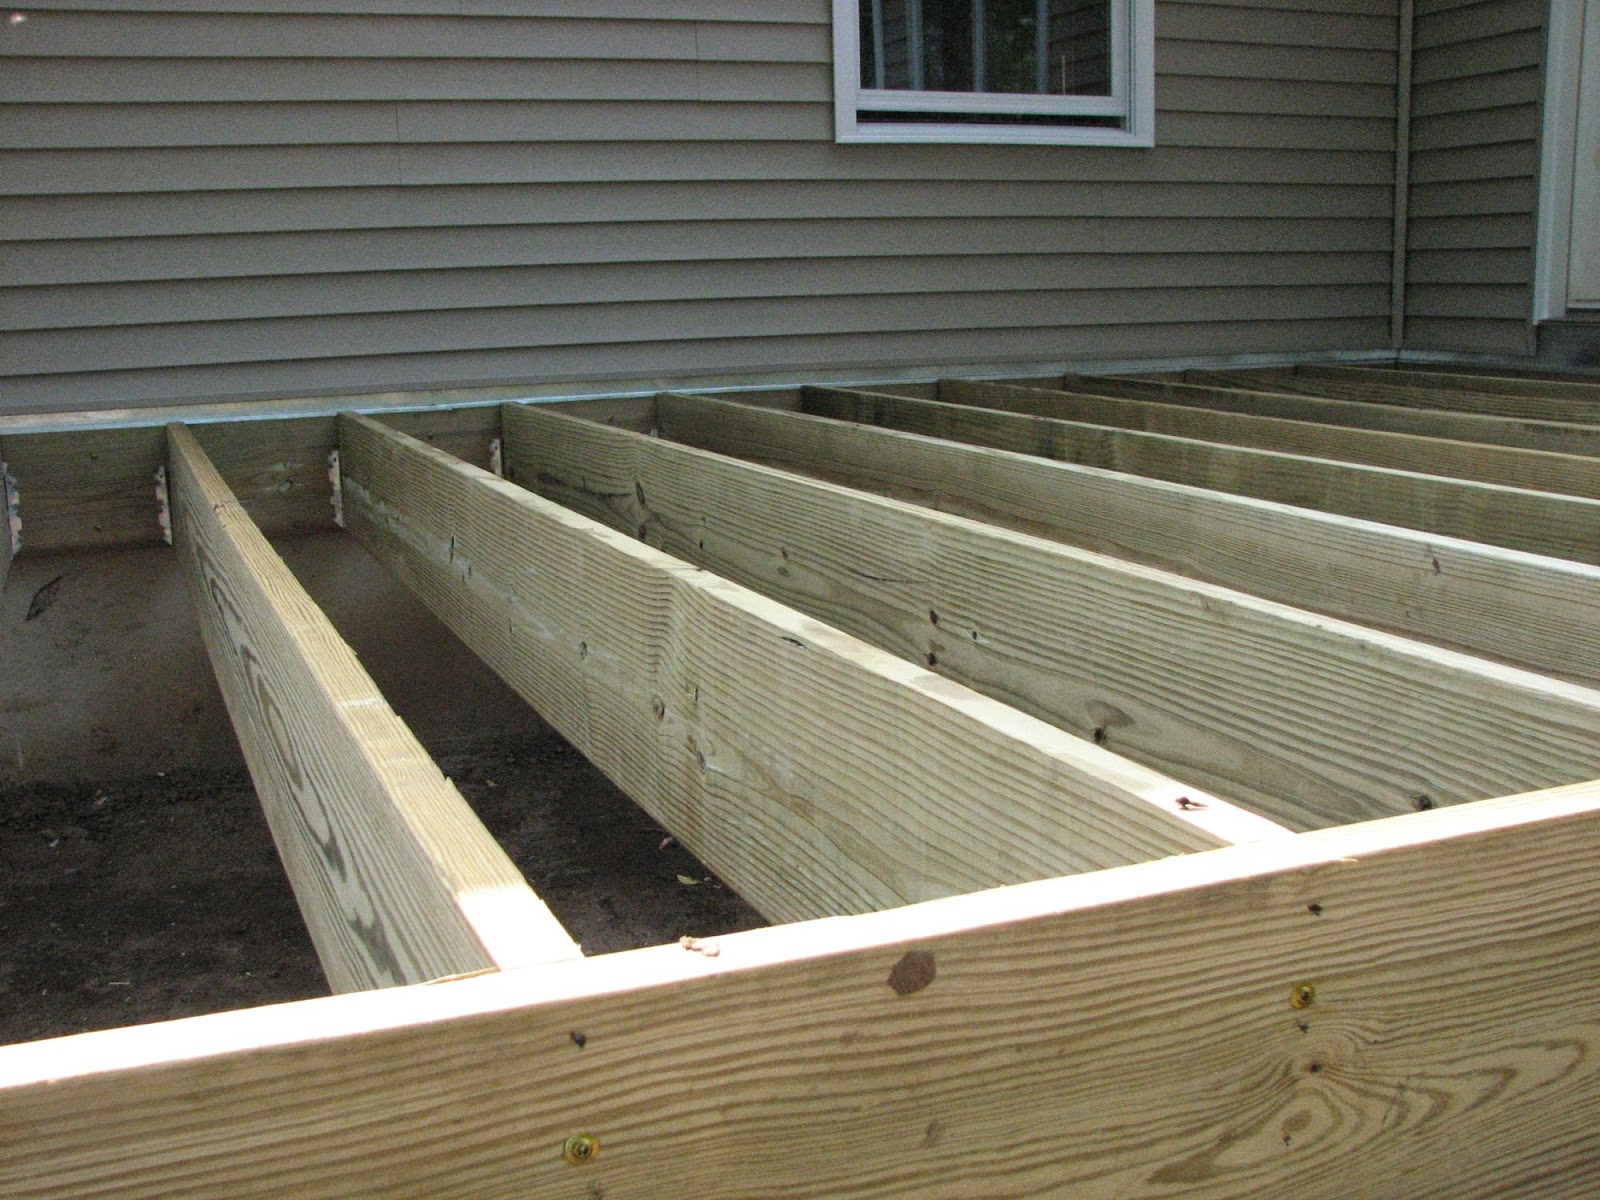 Stitches Of Violet Insulation And Deck Joists